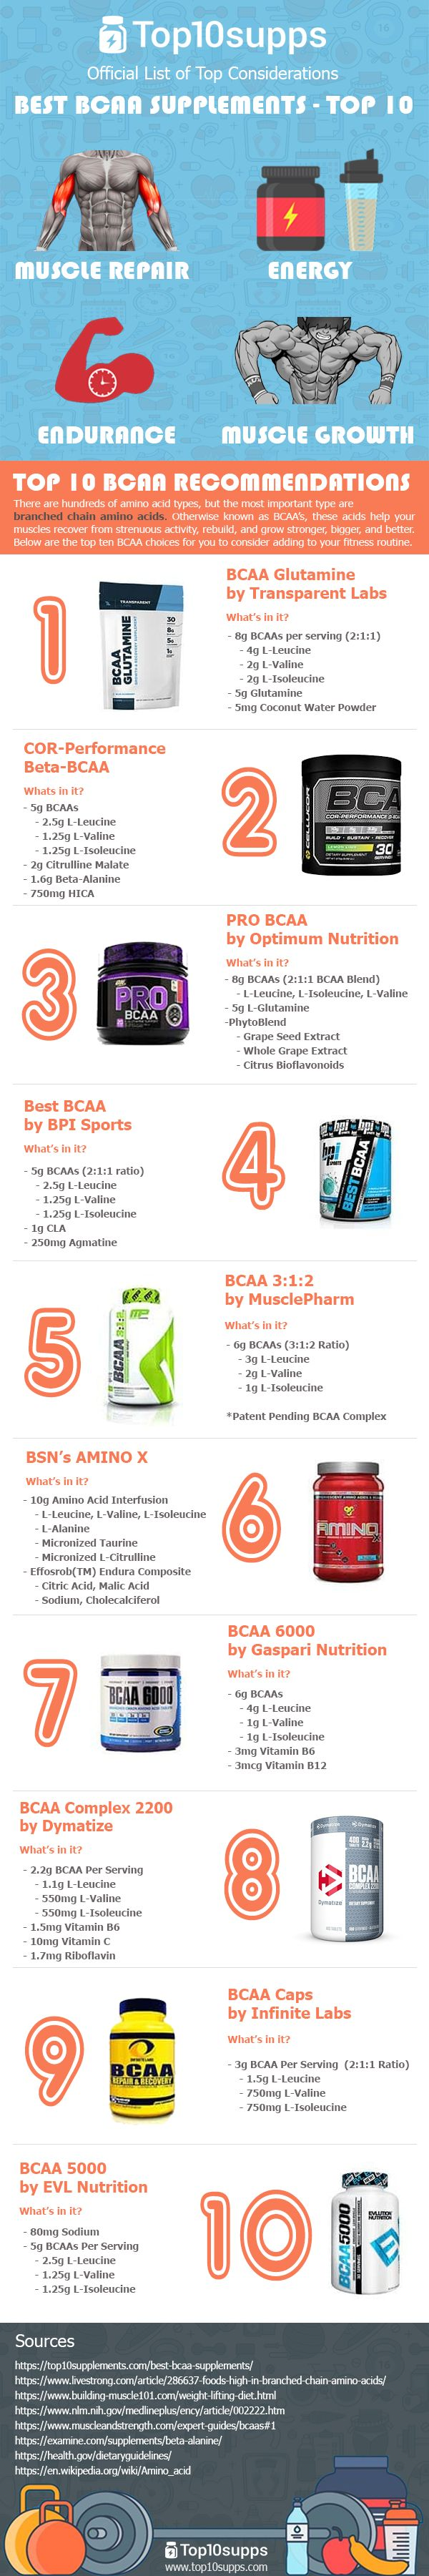 Follow the link to a helpful guide to and overview of what they are and choosing a quality BCAA supplement.  Amino acids are vital for many functions of the human body, and even more important for strength trainers. Amino acids help to build and repair muscle tissues, among many, many other uses in the body.